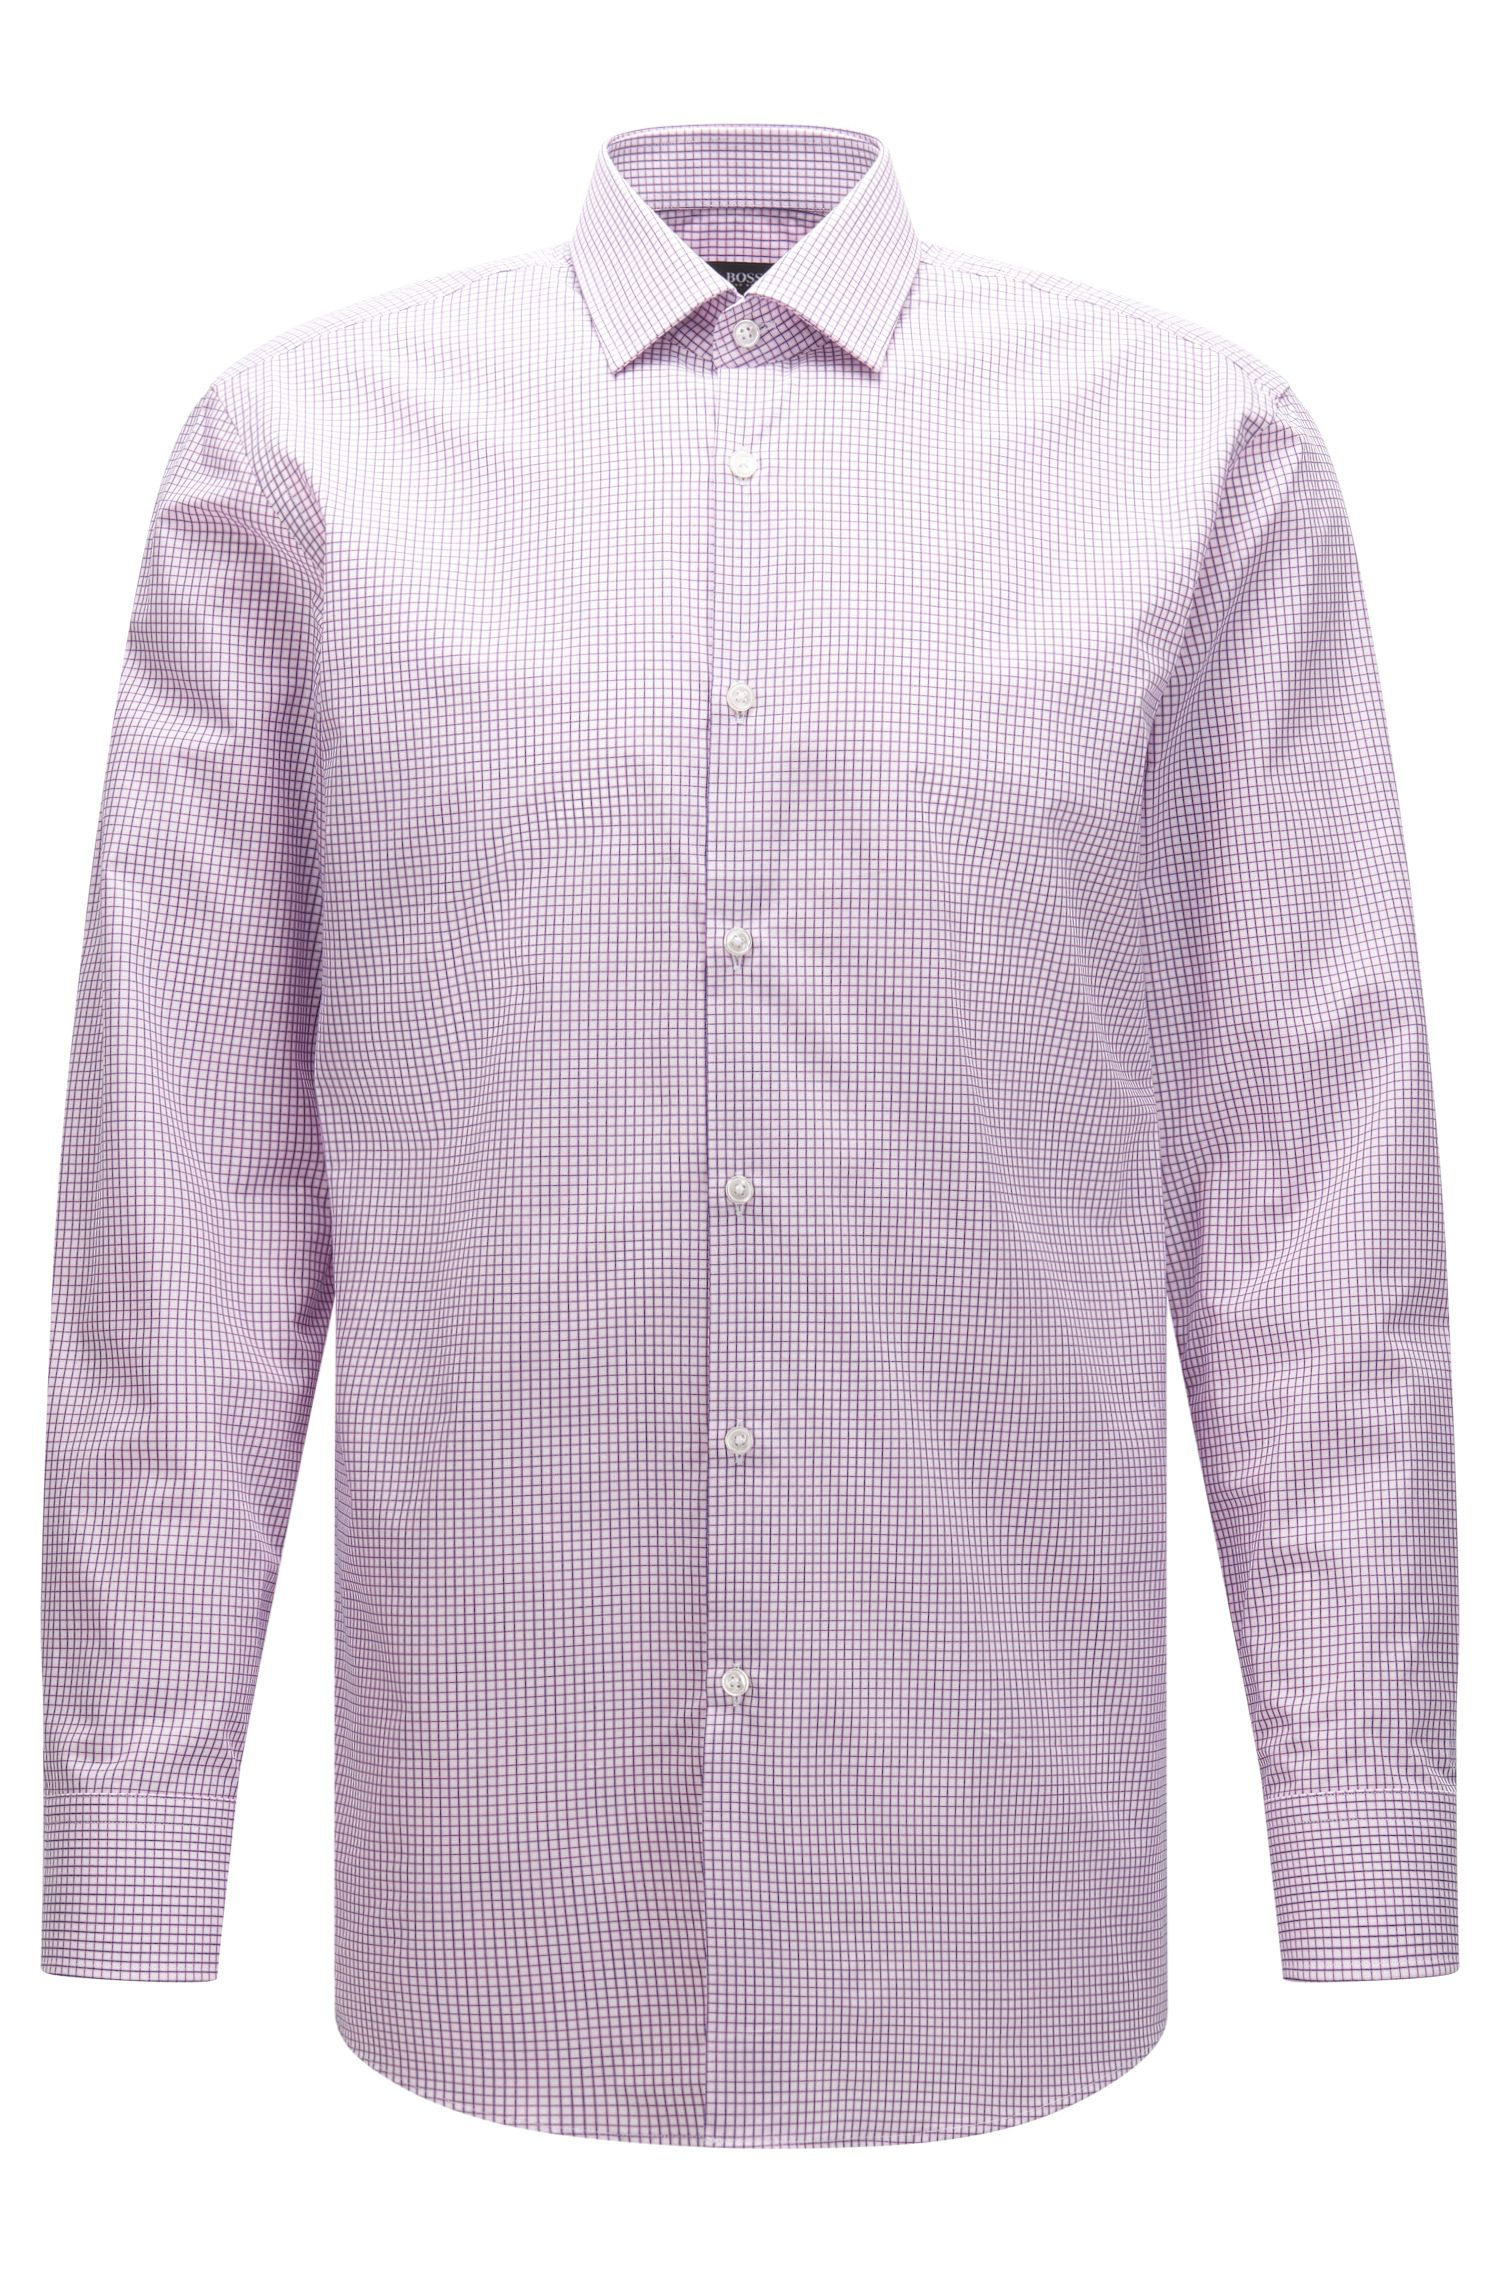 Checked Cotton Dress Shirt, Sharp Fit | Marley US